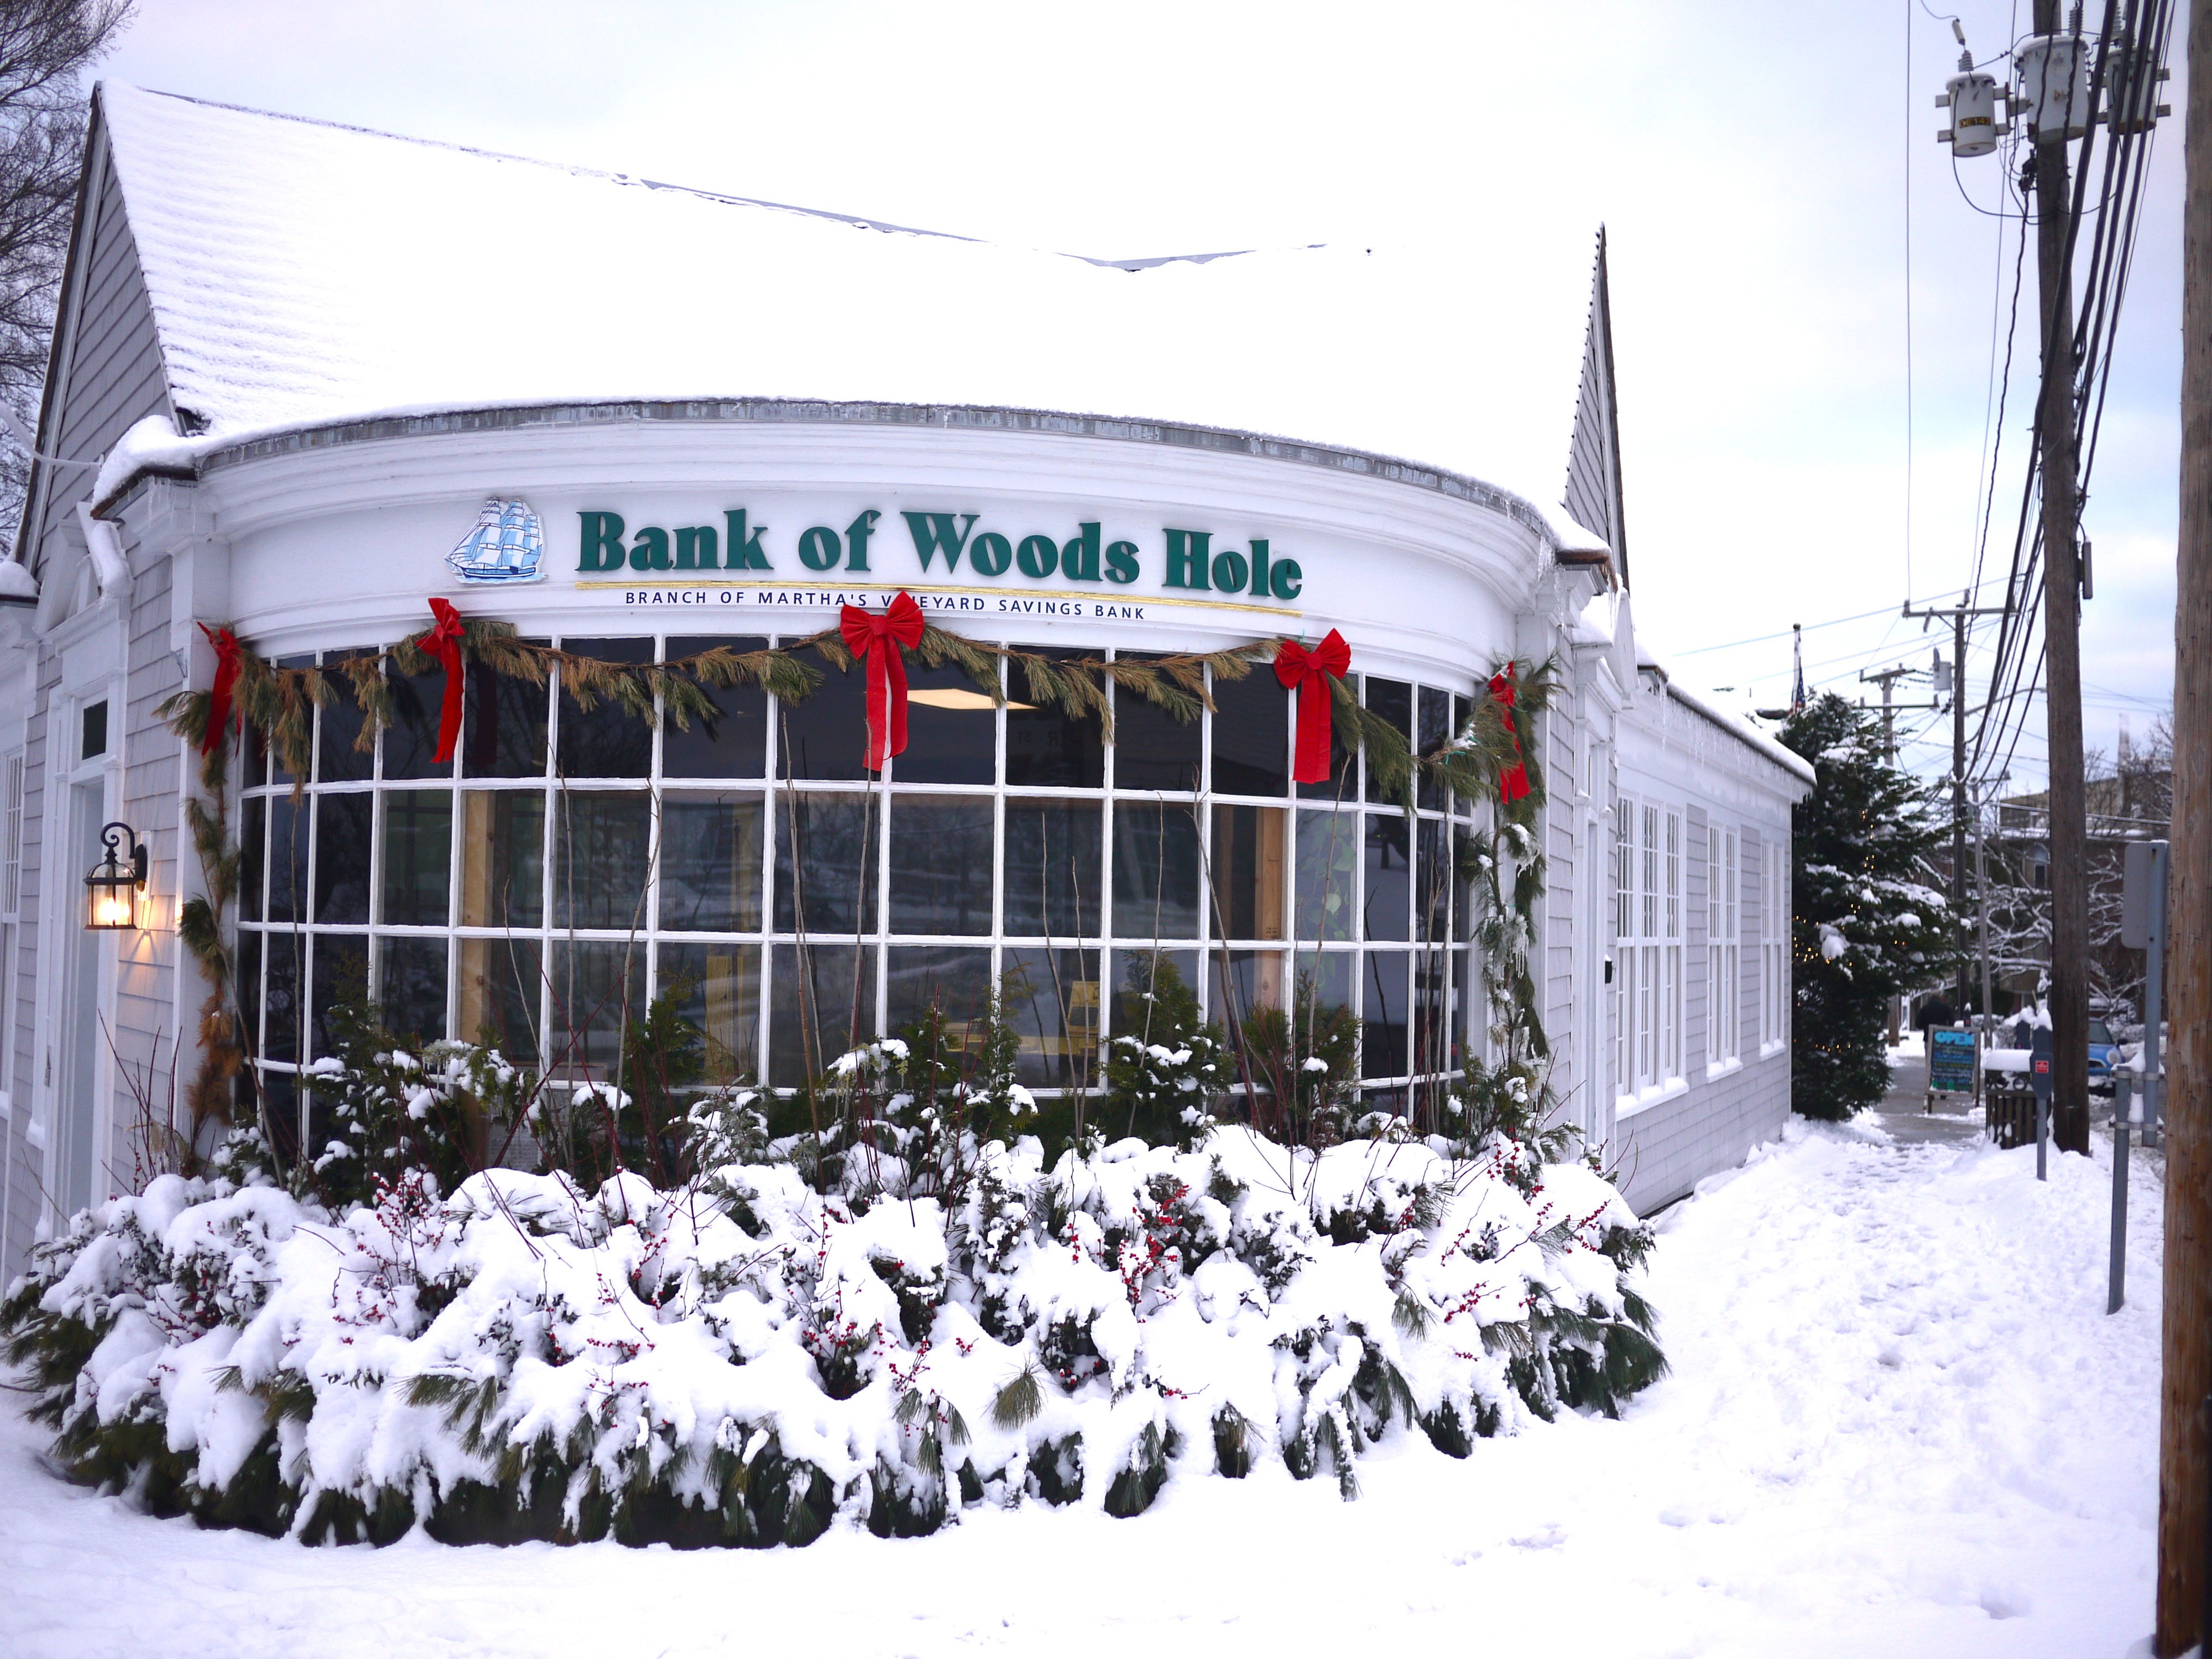 Bank of Woods Hole in snow.